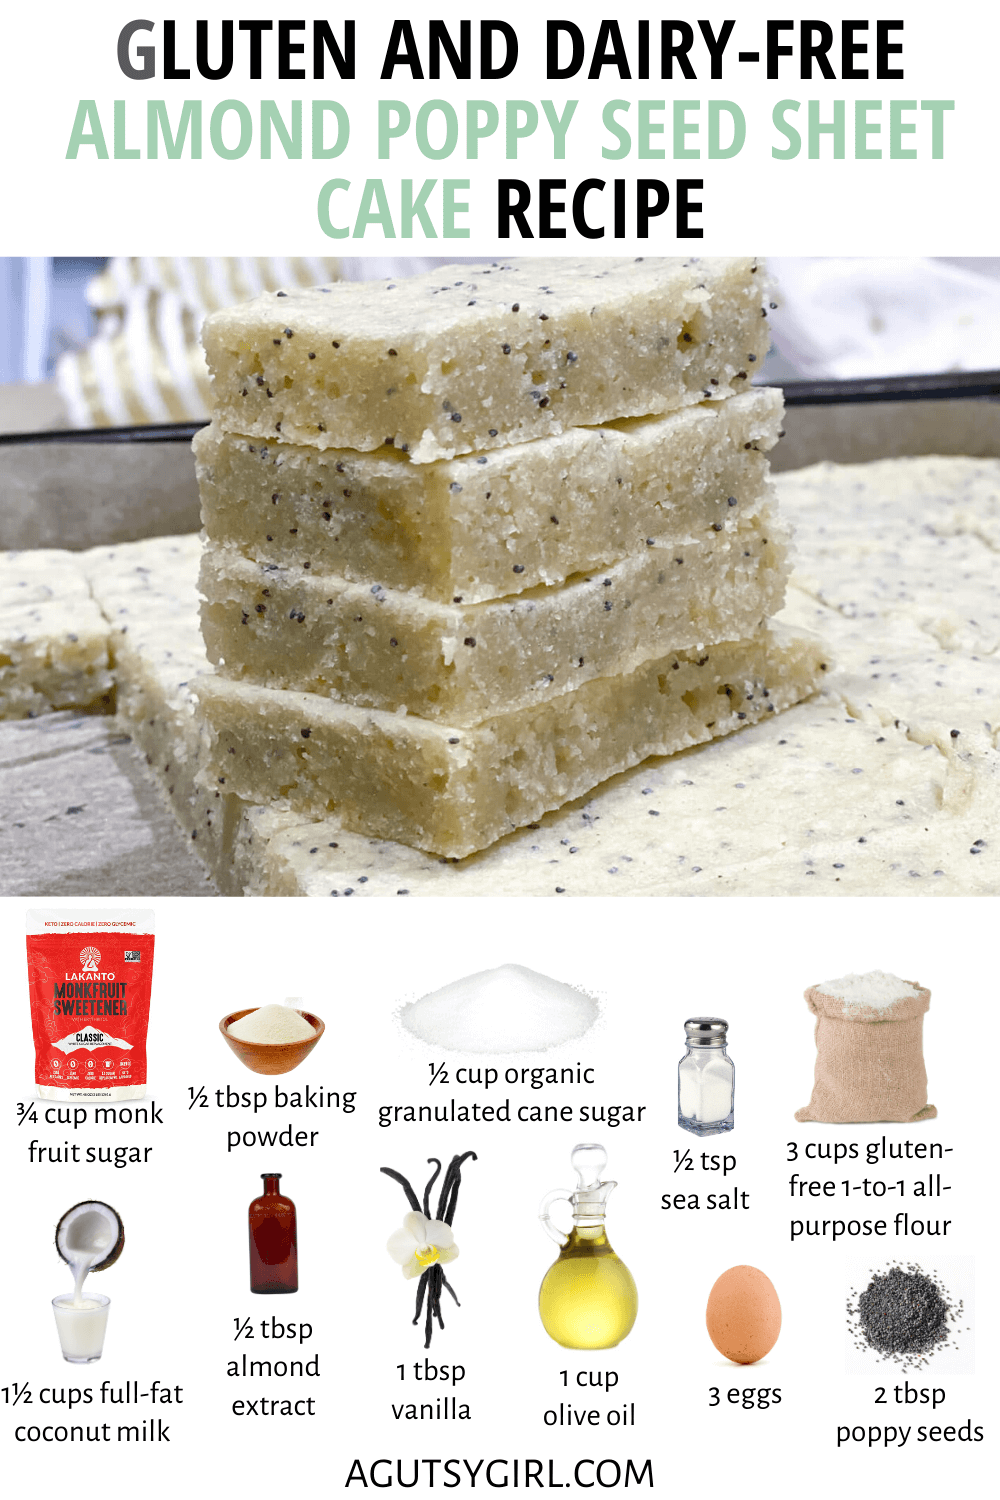 Gluten and Dairy-Free Almond Poppy Seed Sheet Cake Recipe agutsygirl.com #glutenfree #dairyfreerecipes #glutenfreecake